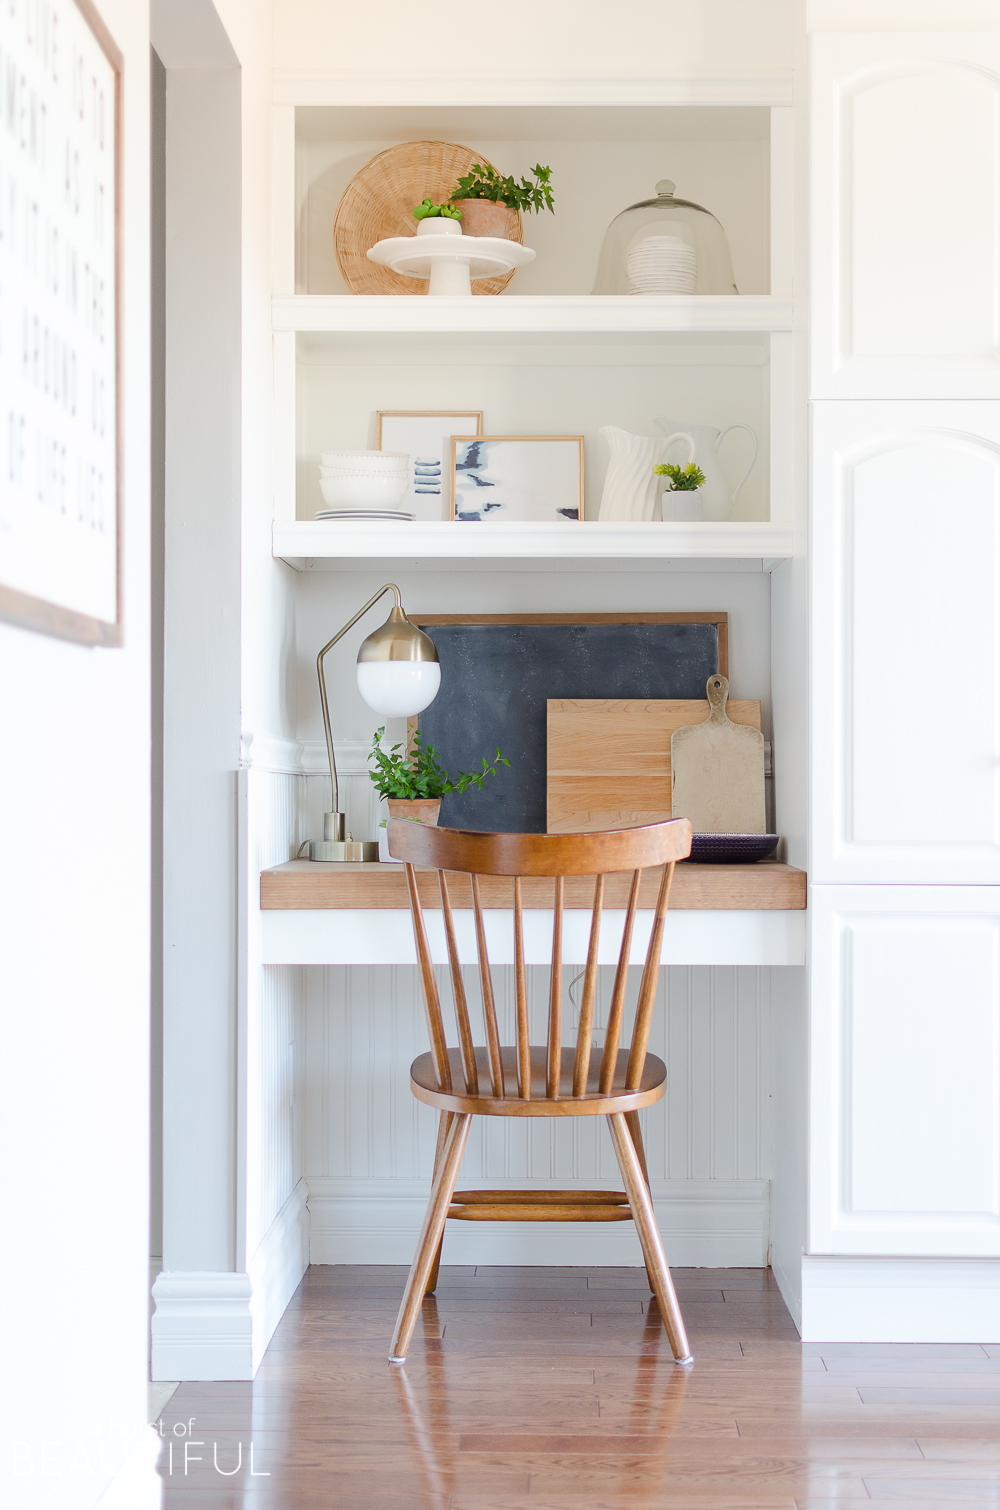 Kitchen Nook | Spring Decorating Ideas for the Kitchen - A ... on Nook's Cranny Design Ideas  id=29366